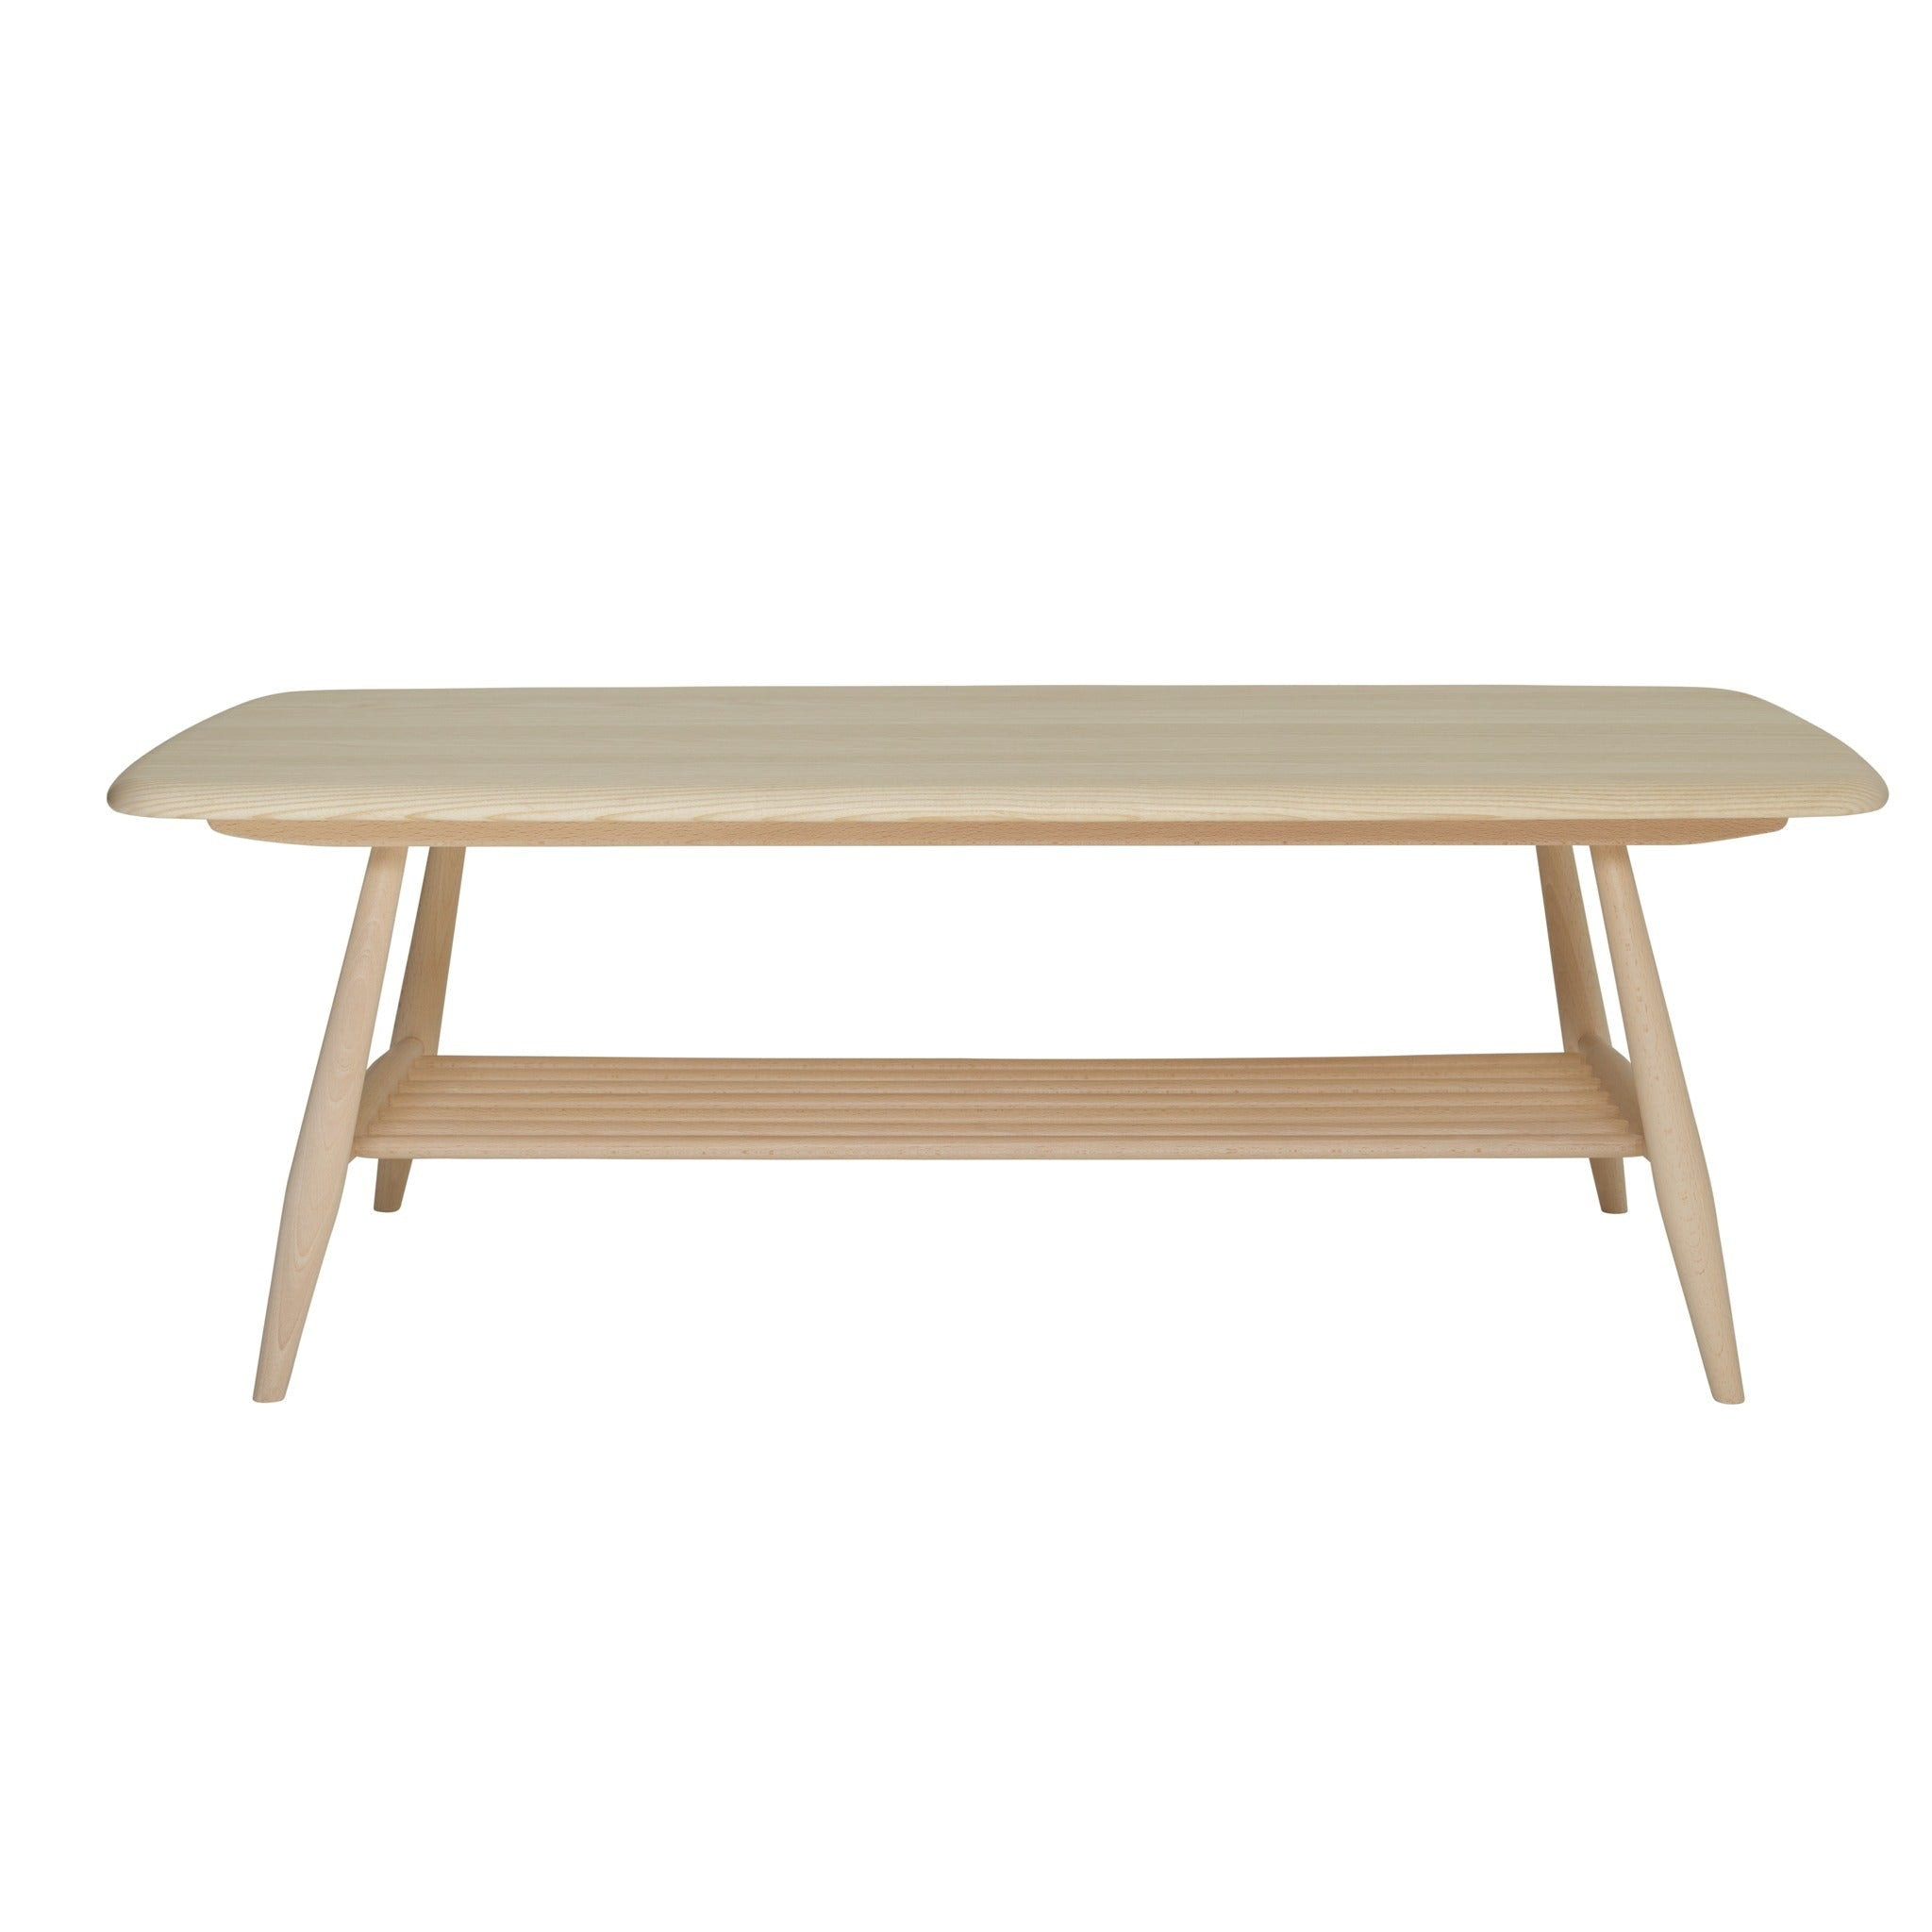 Originals Coffee Table by Ercol